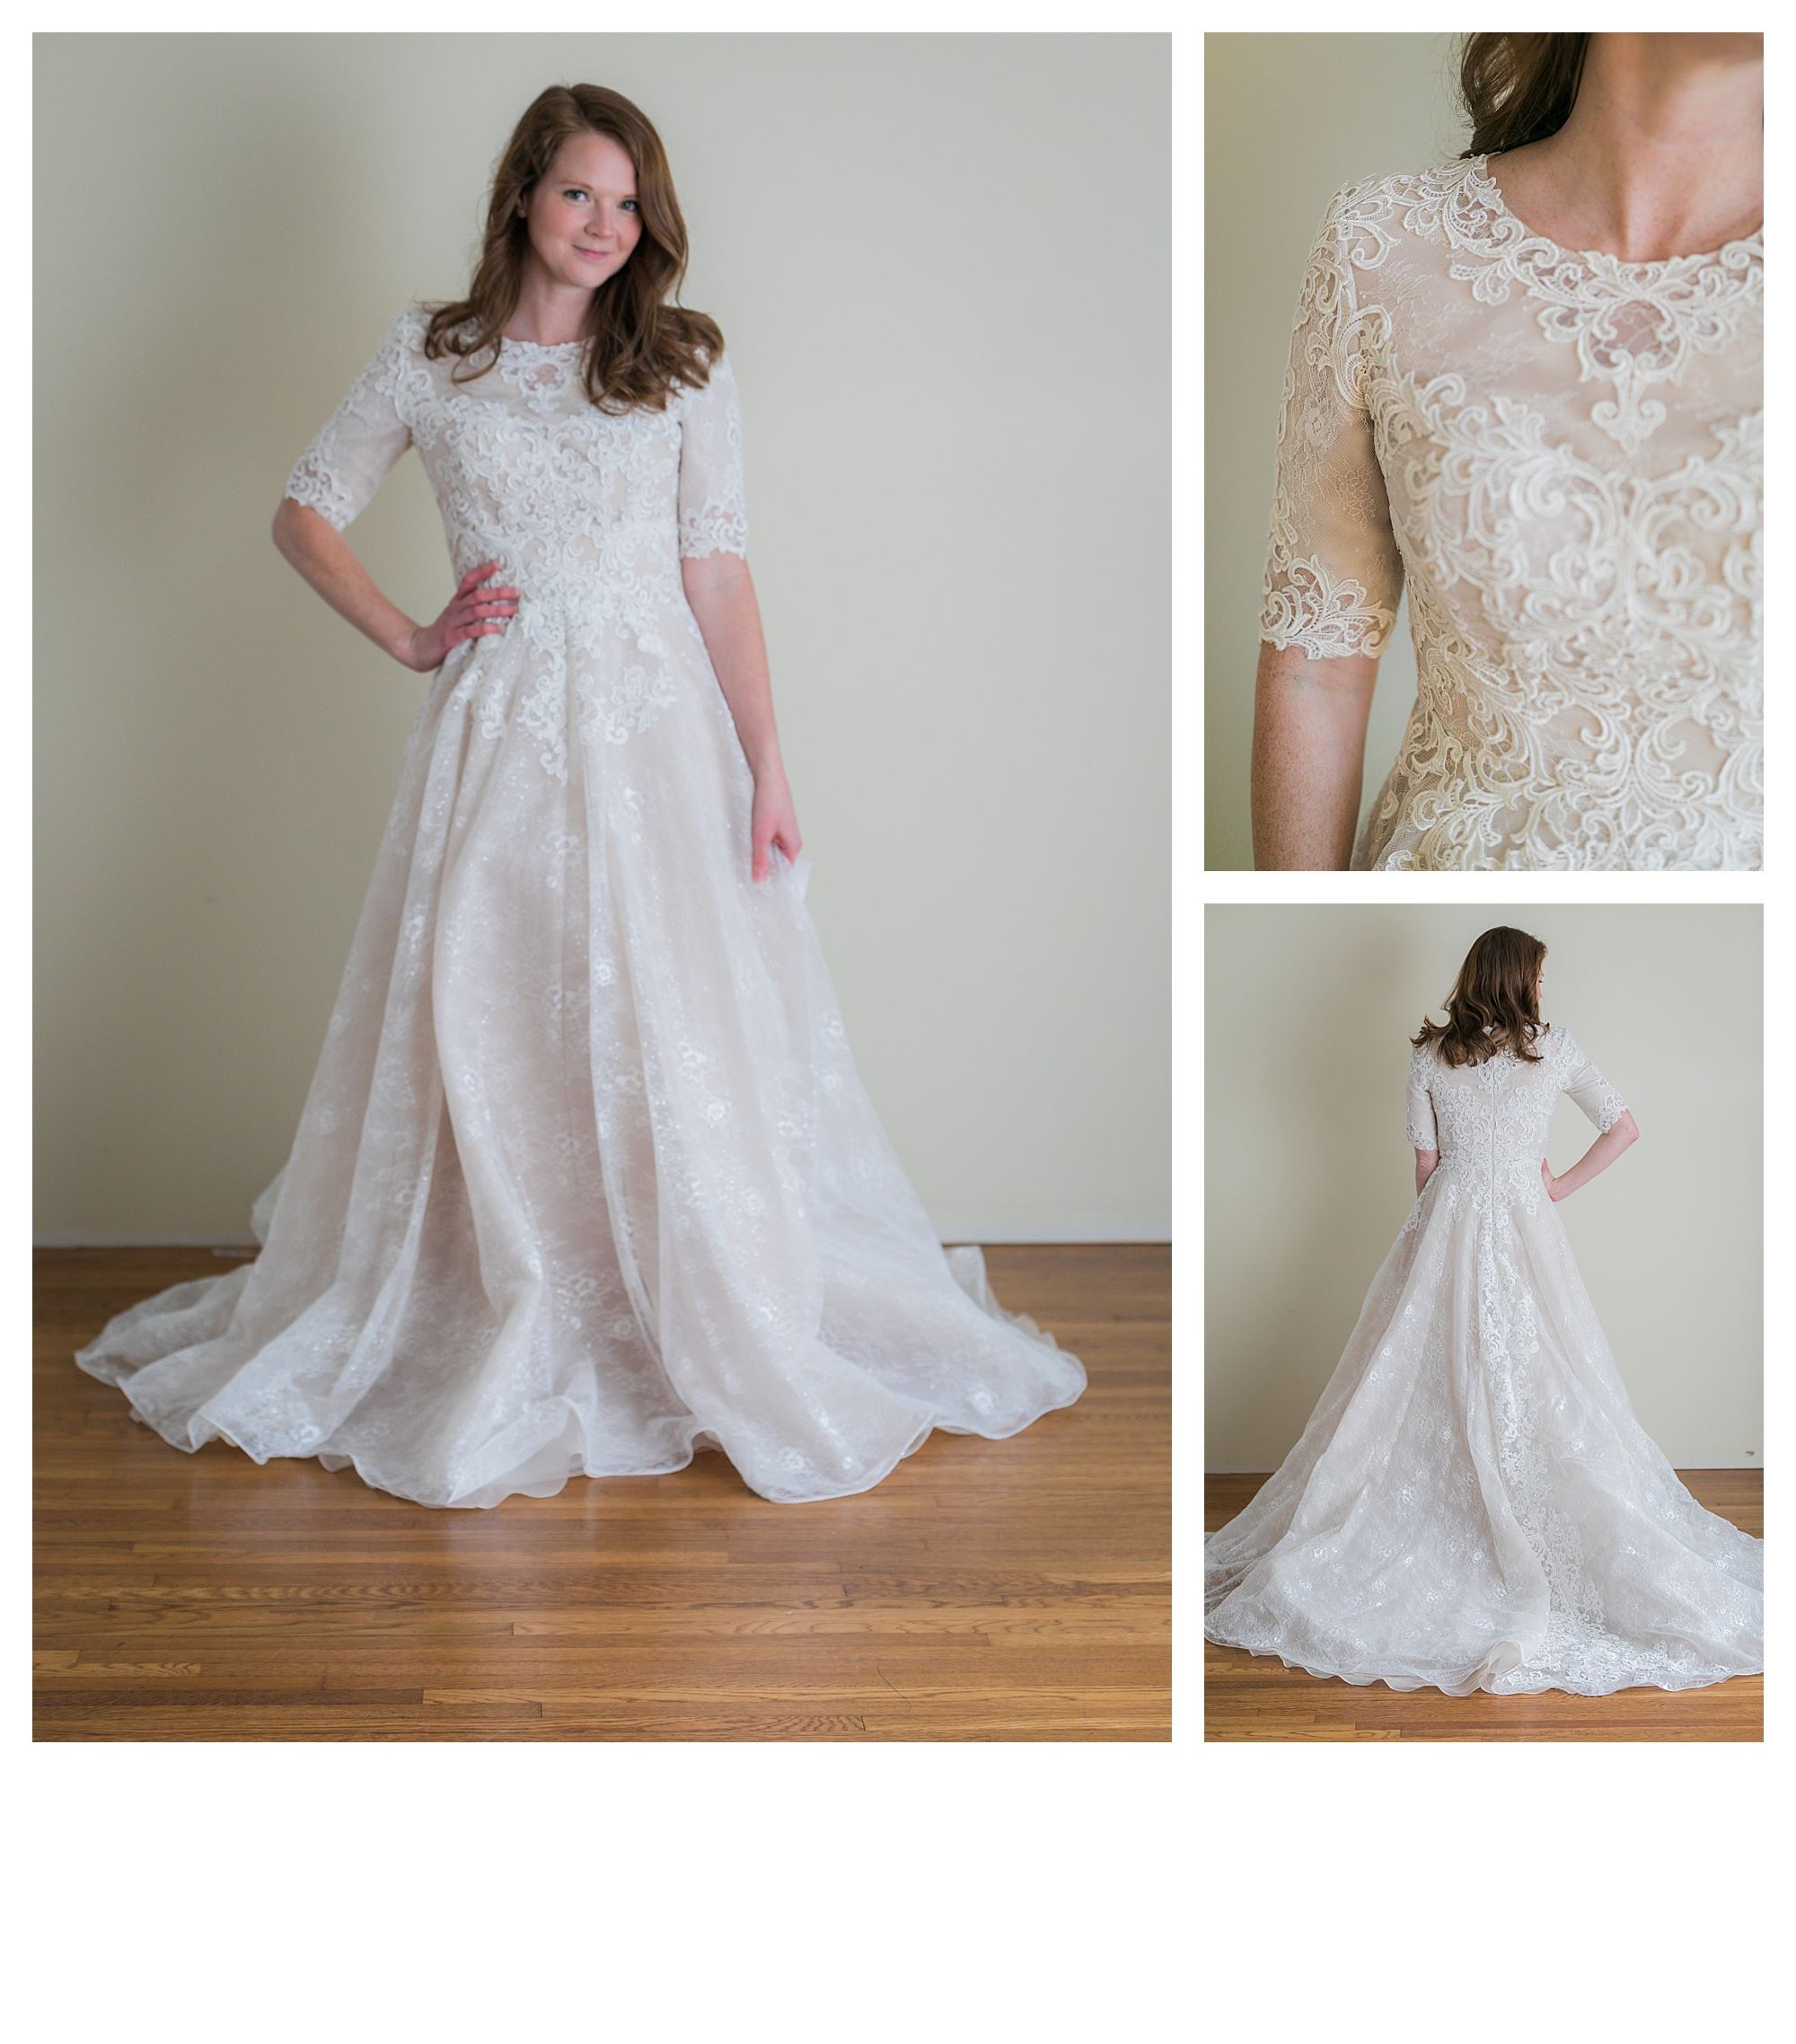 Salome - Size 8 - Ivory/Champagne - Originally priced $1999 - Sample box price $1399